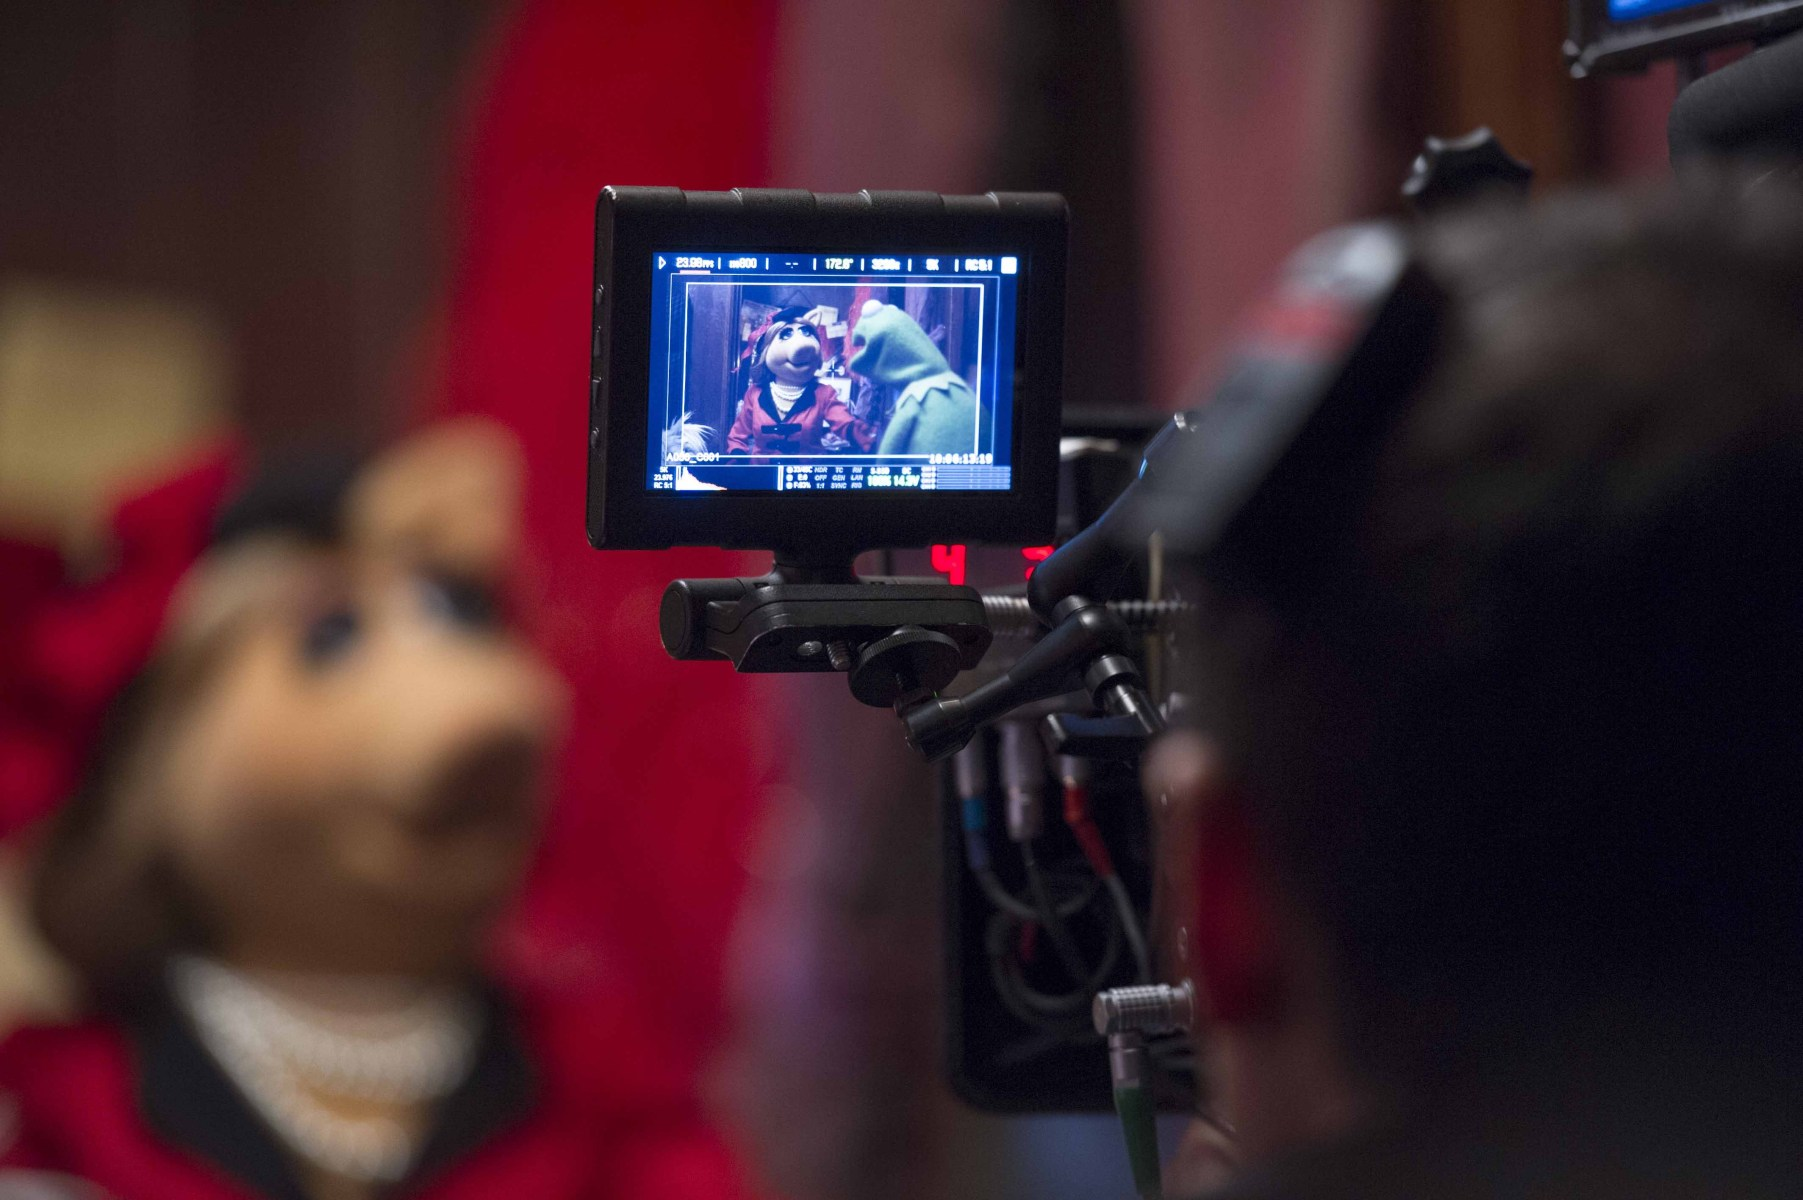 The Muppets Behind the Scenes